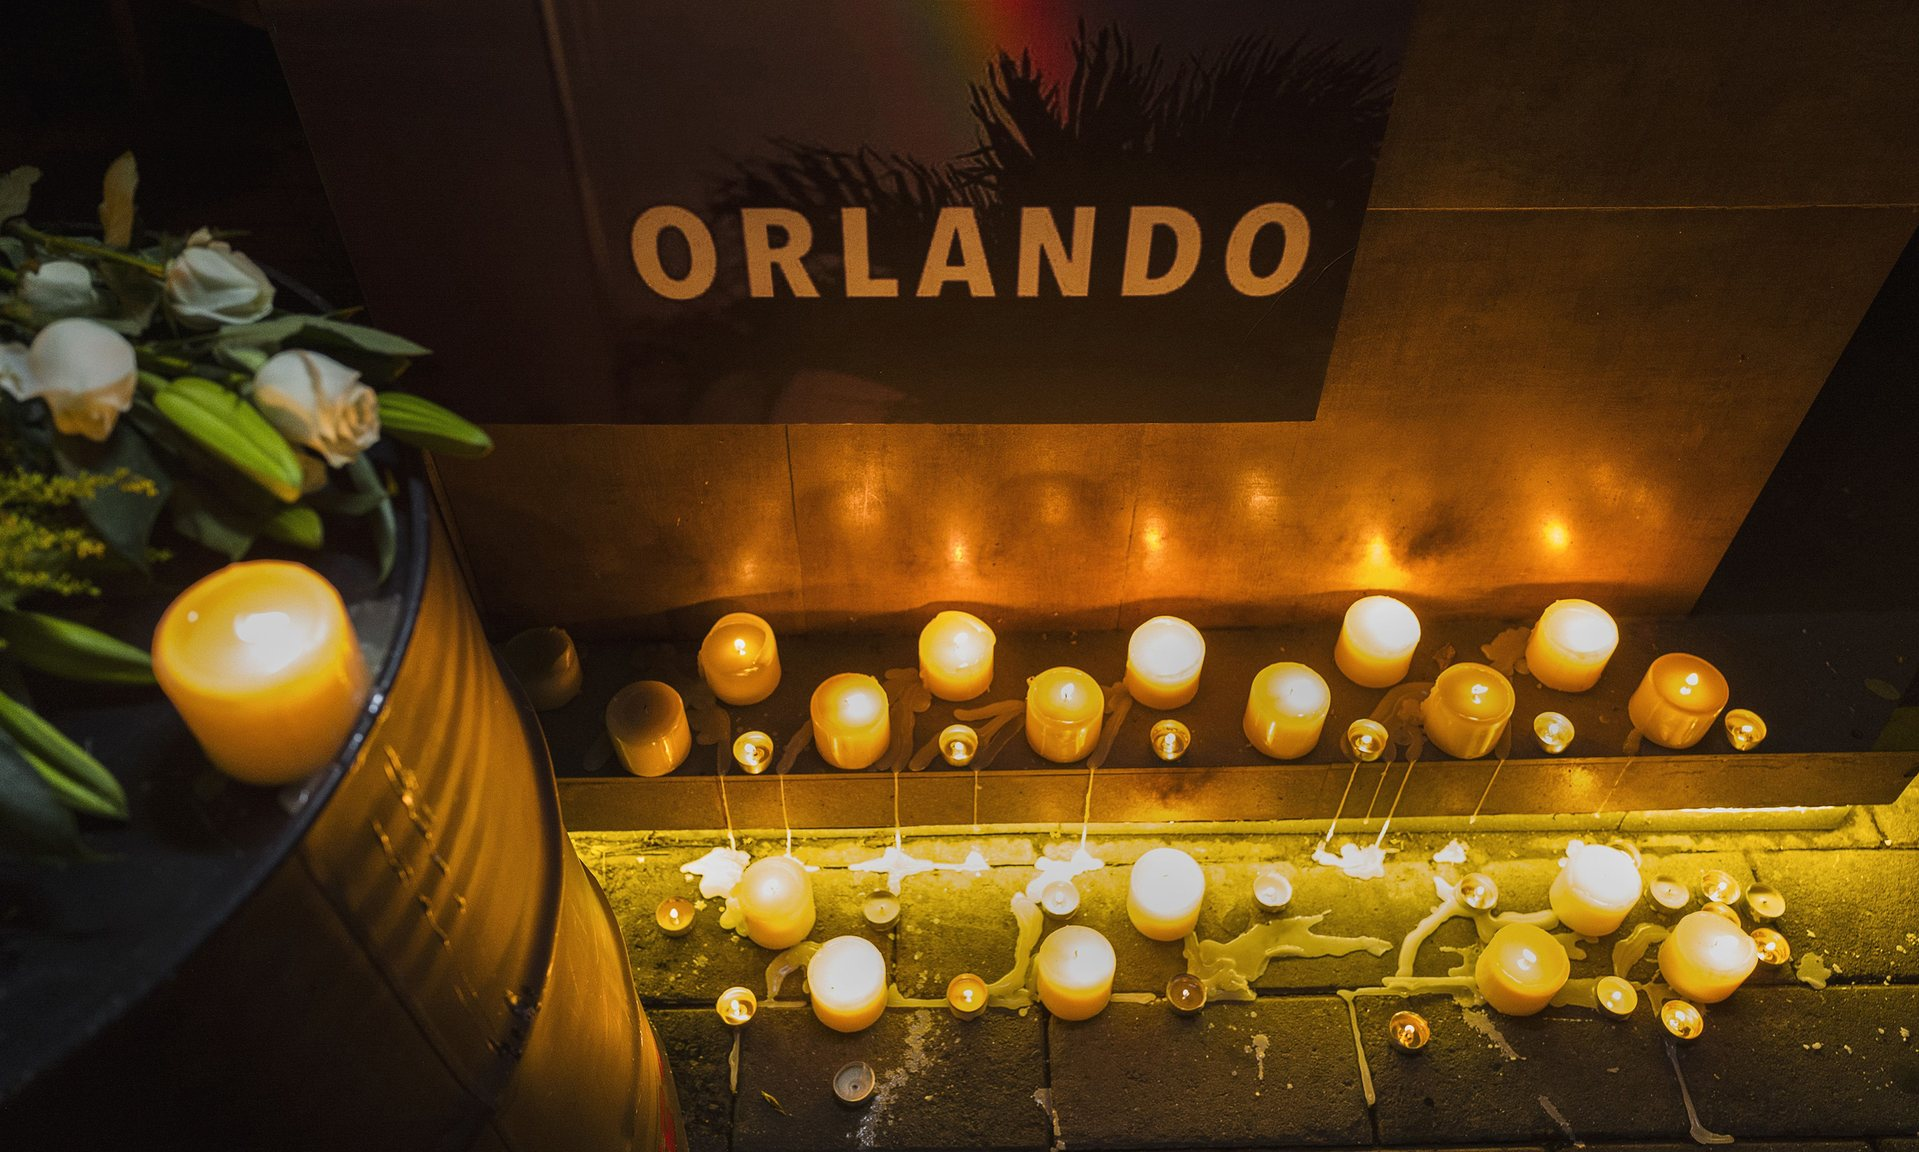 Orlando Shooting: Is It Islam or Western Homophobia? - MPC Journal - Disentangling Omar Mateen's motivations in the Orlando shooting, at this point a major focus of the inquiry, is likely to be a complicated task. Photograph: Kevin Frayer/Getty Images